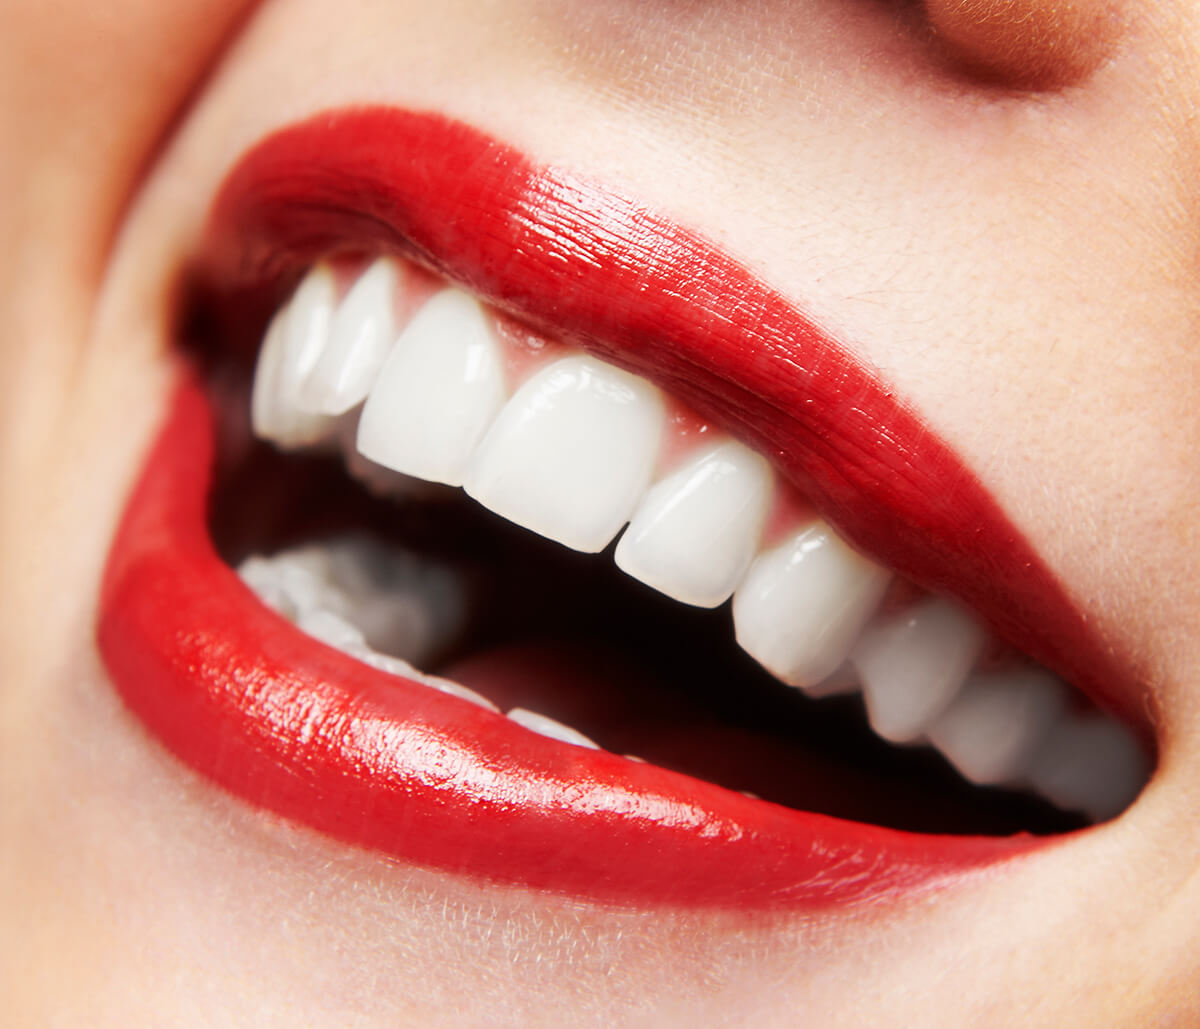 Clear Braces for Teeth Straightening in Palo Alto Area